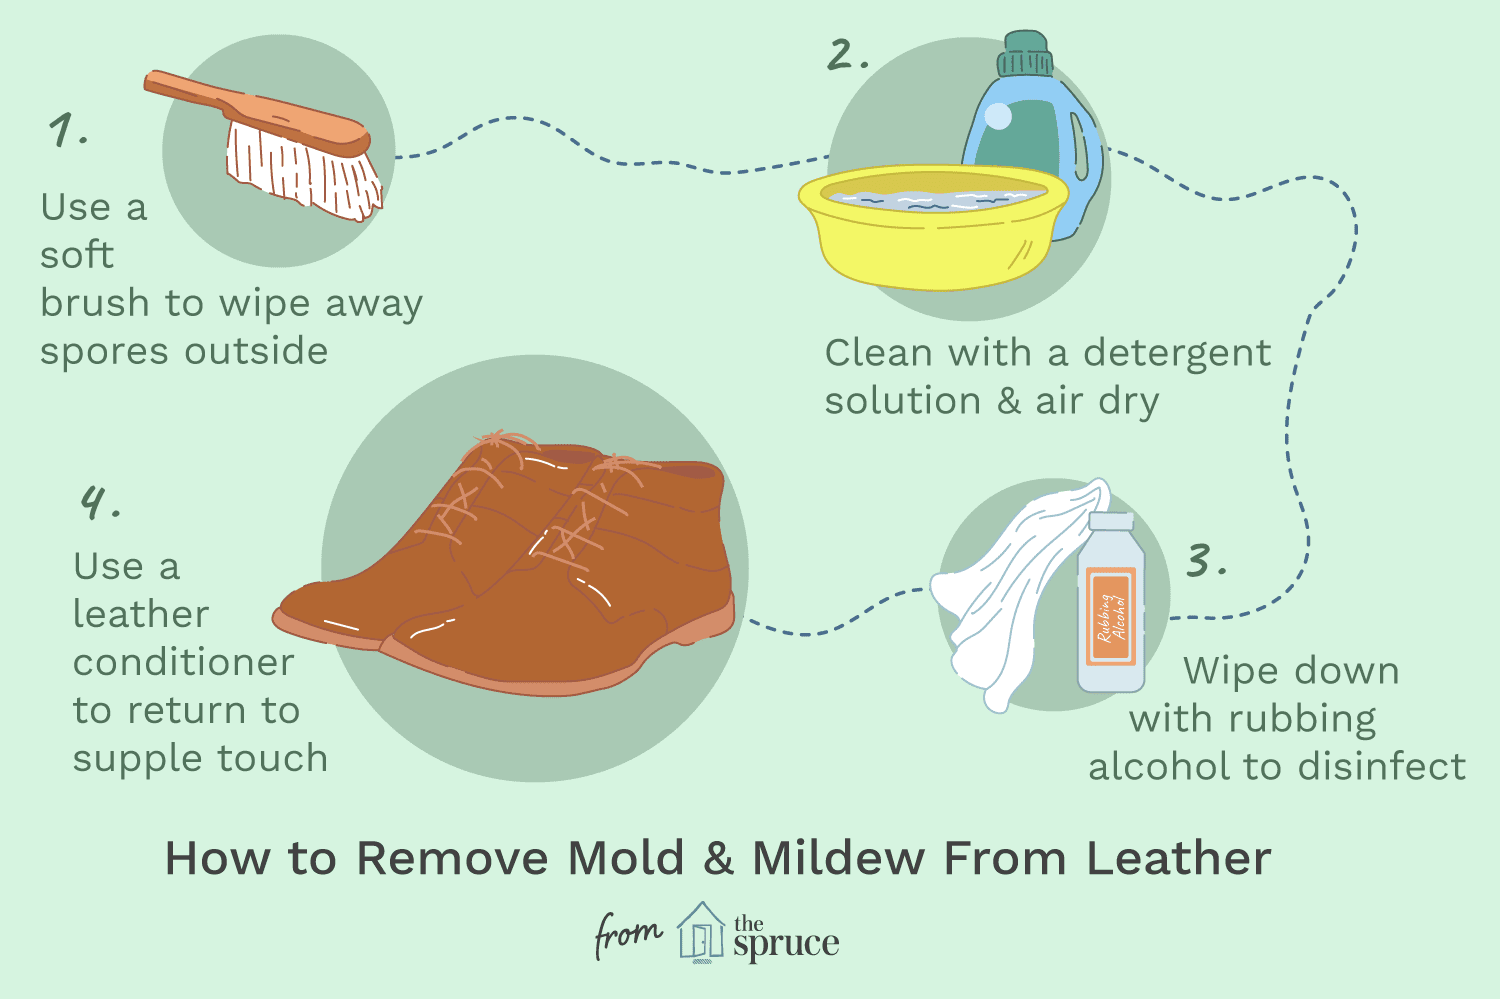 Remove Mold and Mildew From Leather Clothes and Shoes